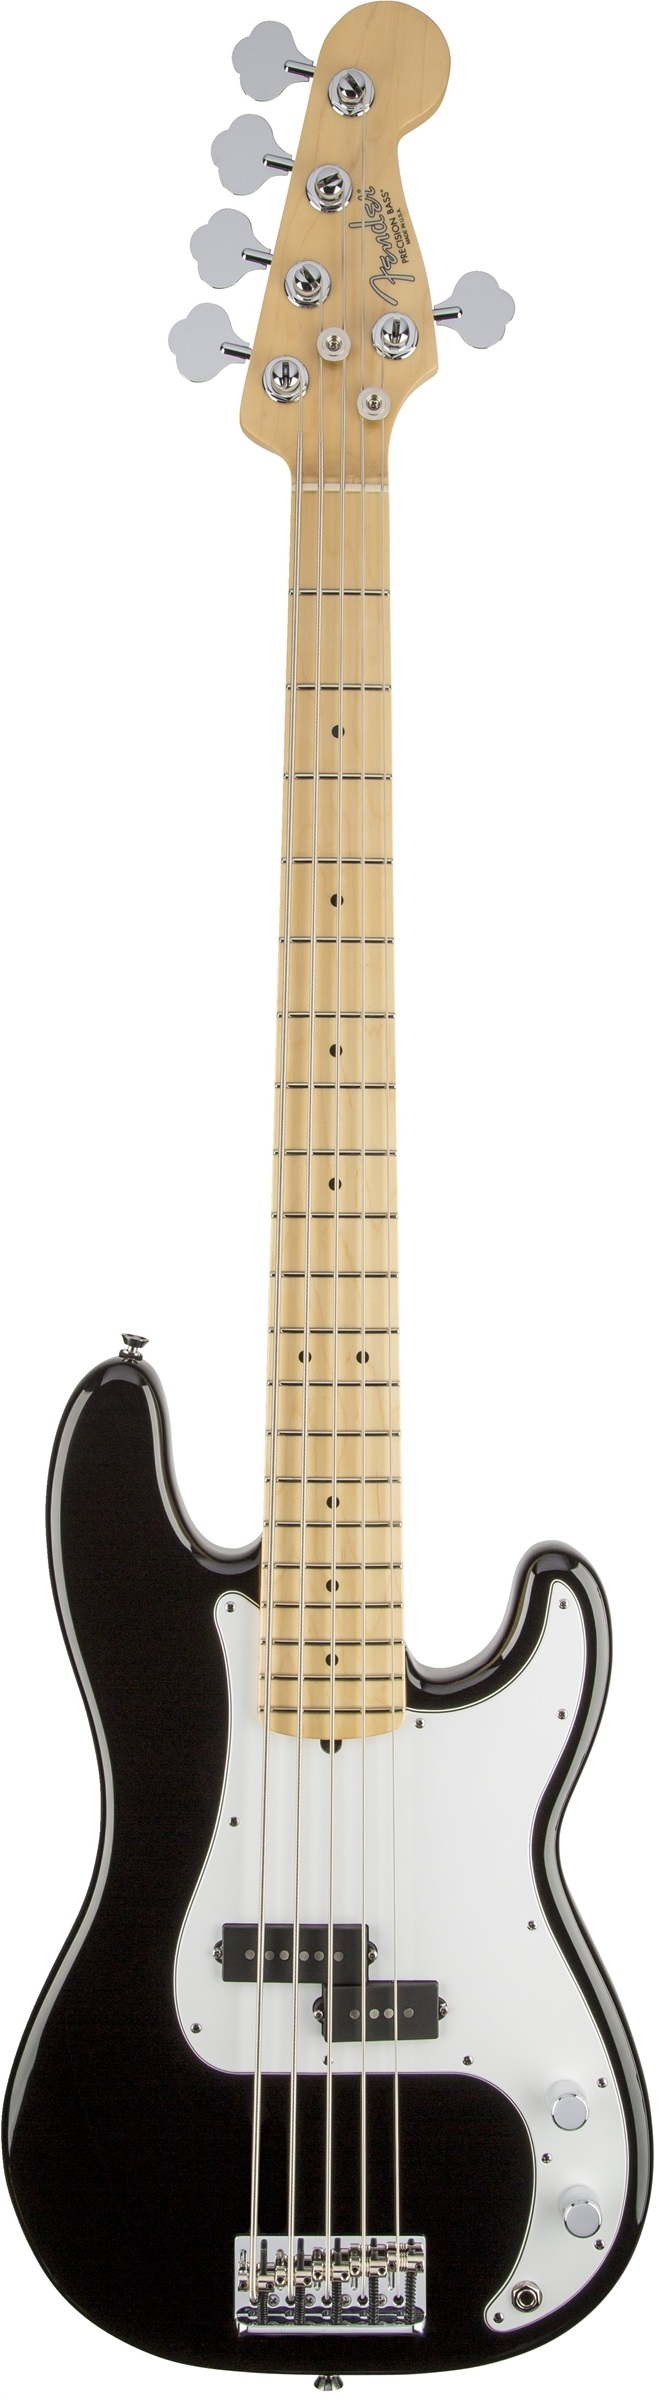 Fender American Standard Precision Bass® V Black Maple Fingerboard Electric Bass Guitar